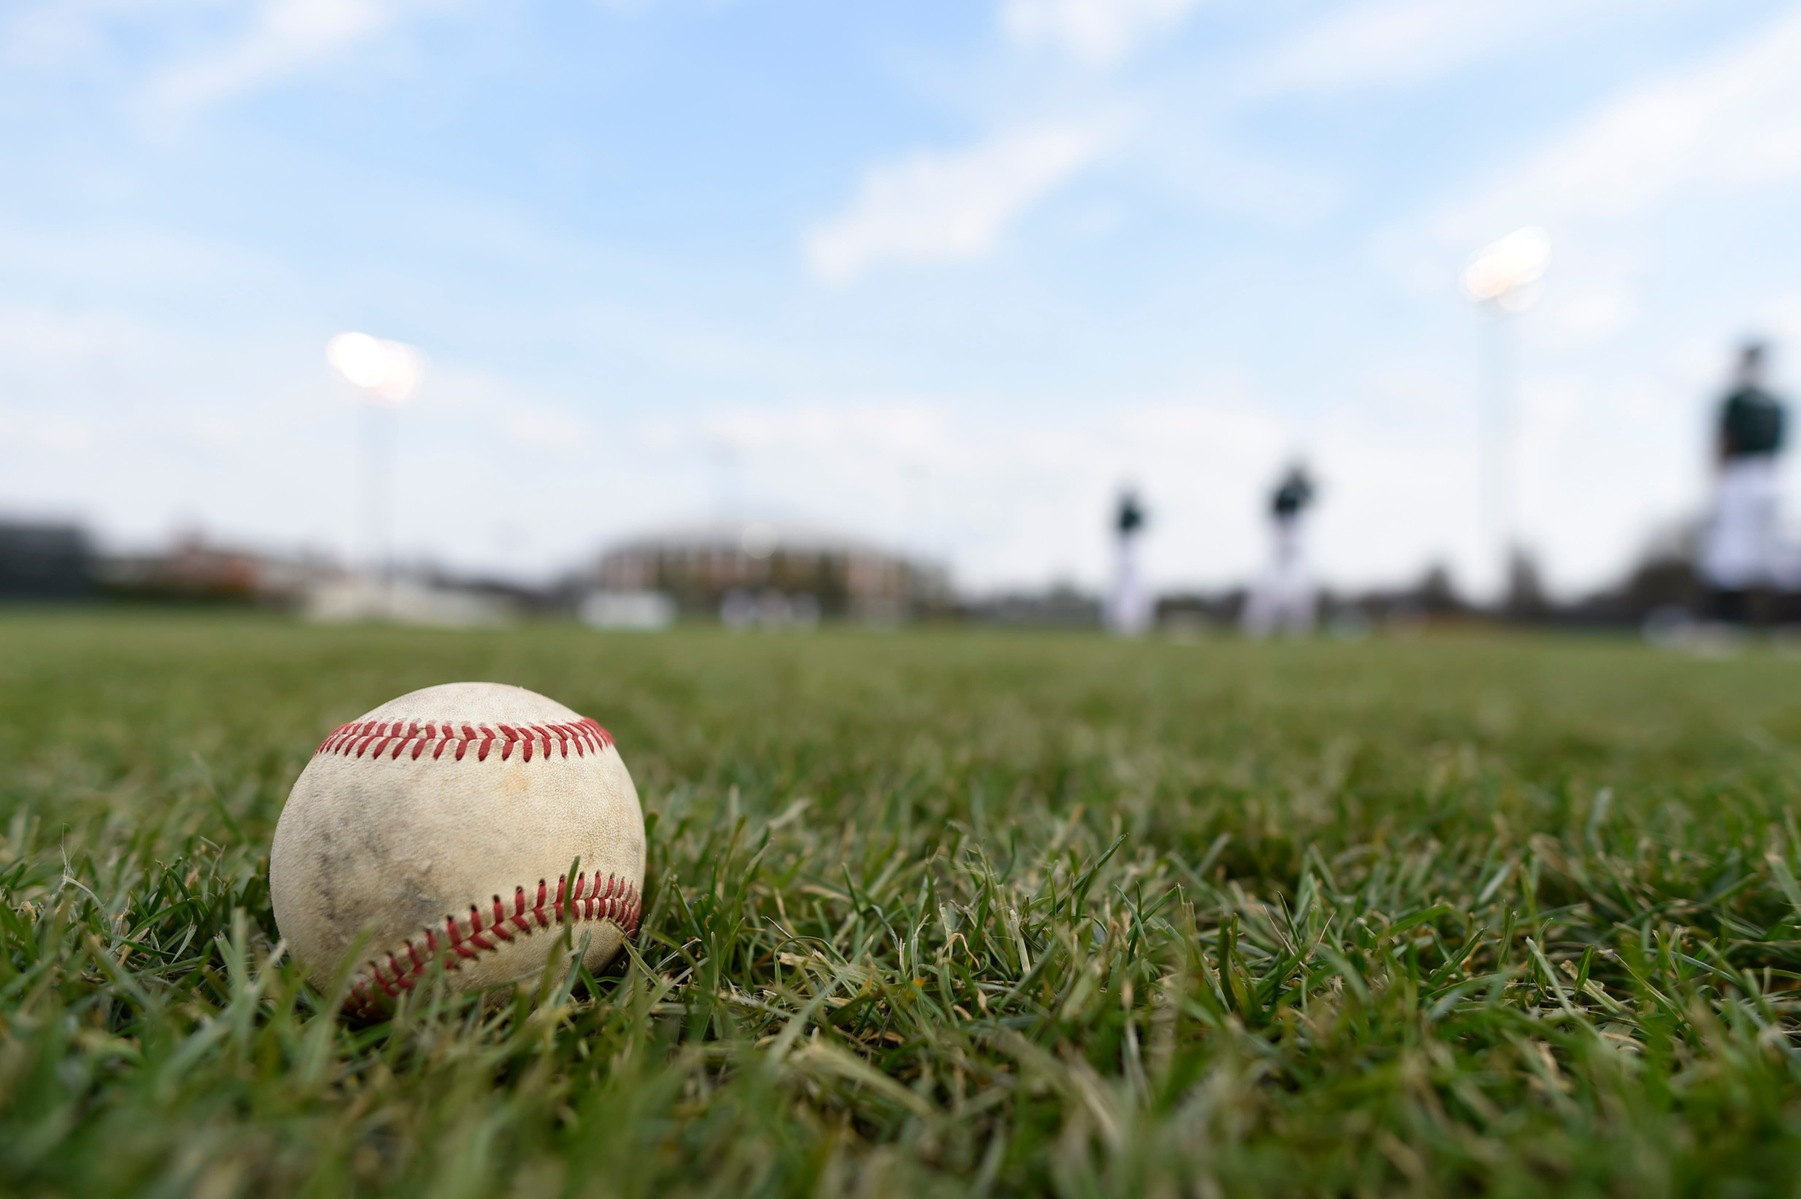 Ohio Baseball's Game Against Shawnee State Postponed